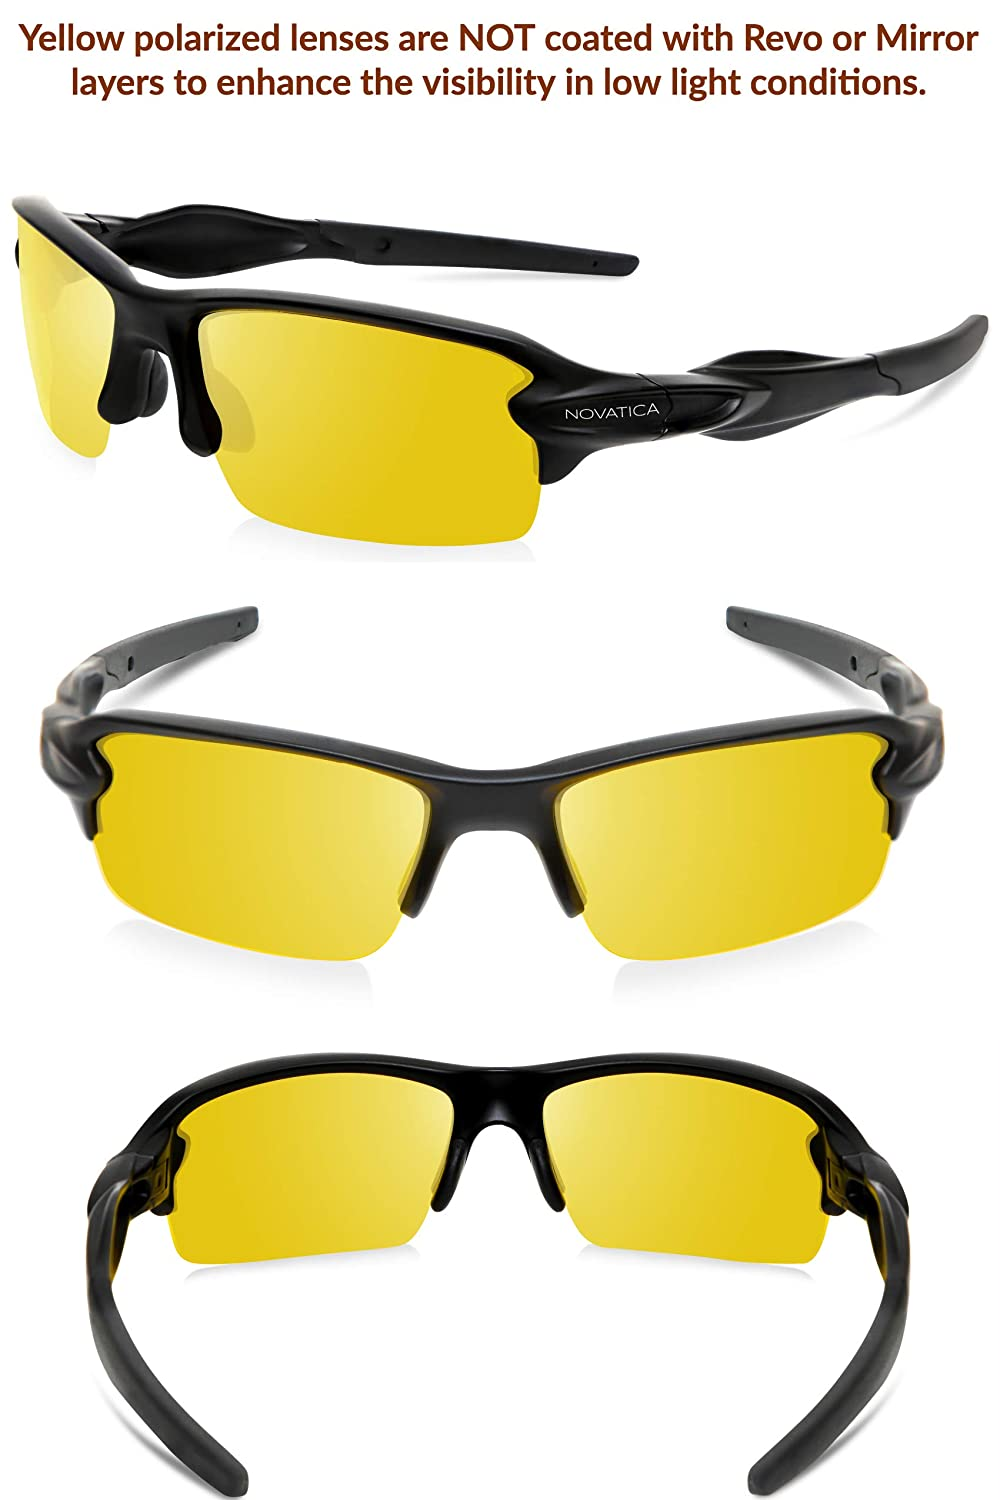 cf73ffe1d8 Amazon.com  NOVATICA Anti Glare Night Driving Polarized TAC Glasses - HD  Vision - UV Protection - Sport Sunglasses - Men   Women - Yellow Lenses -  Durable .